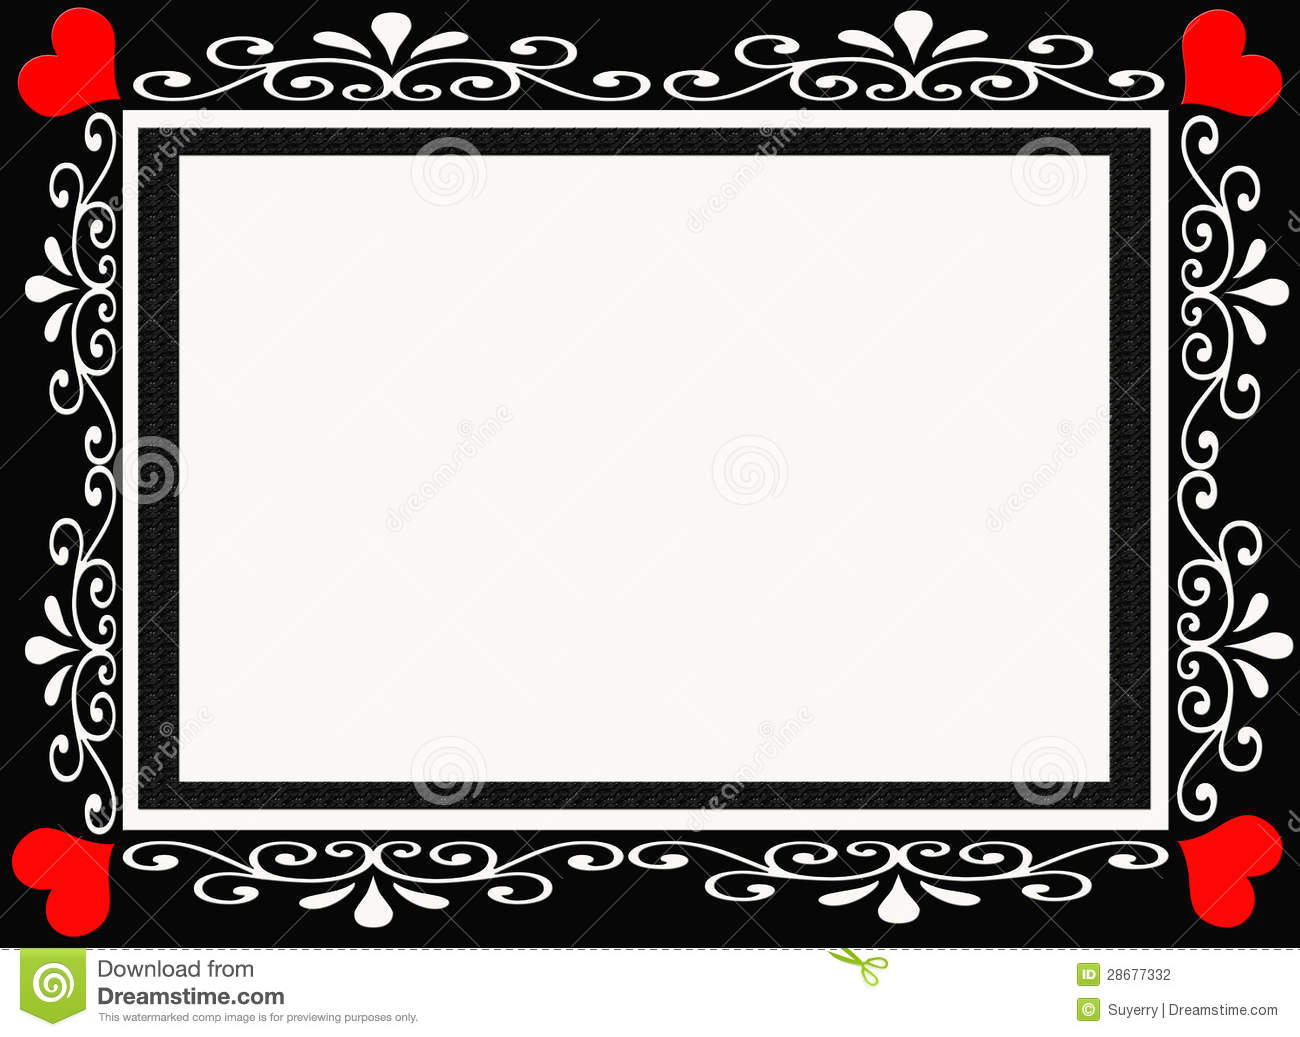 ef0588fdf38 Black And Red Heart Designer Frame Border Stock Photo - Illustration ...